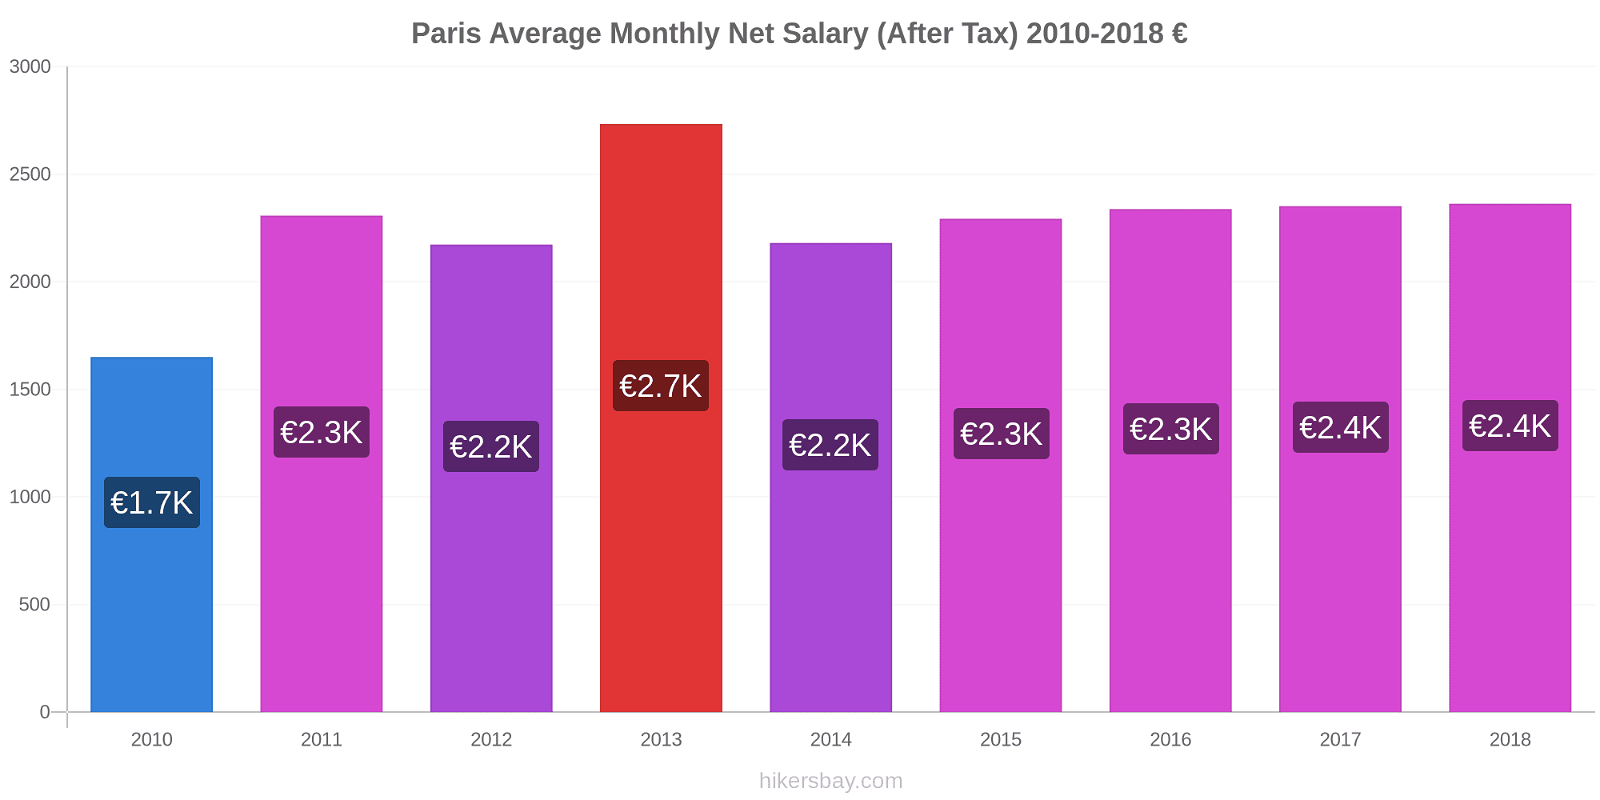 Paris price changes Average Monthly Net Salary (After Tax) hikersbay.com